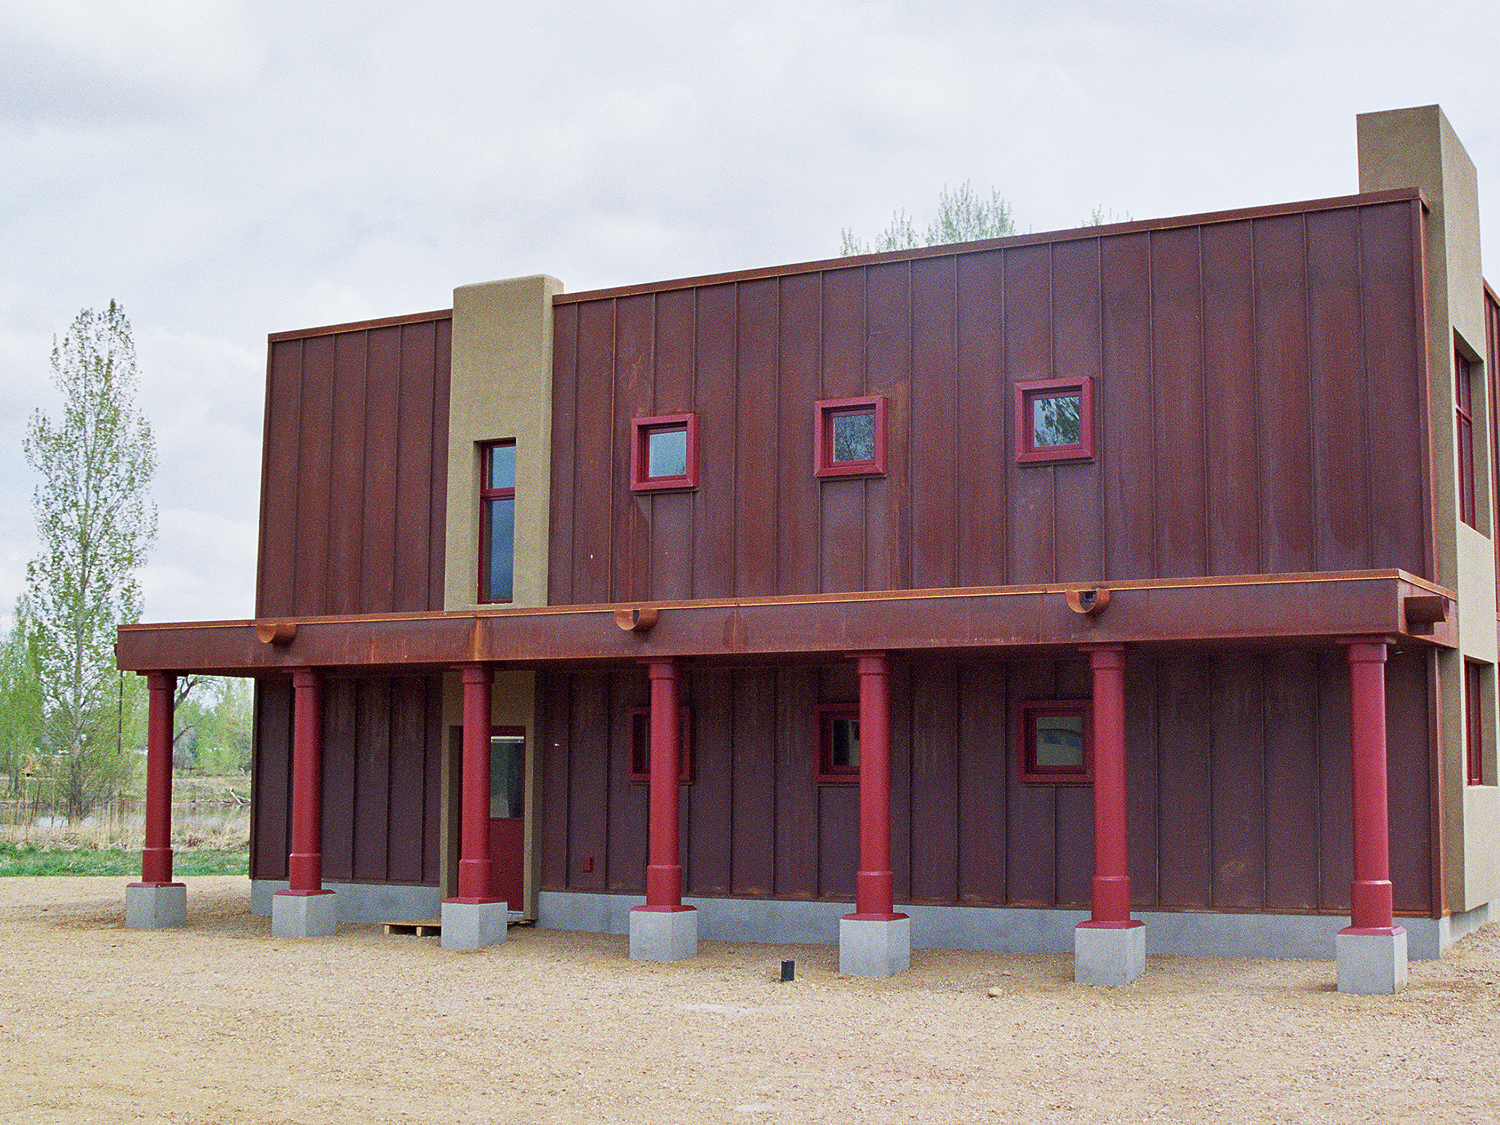 Cold rolled steel standing seam panel siding